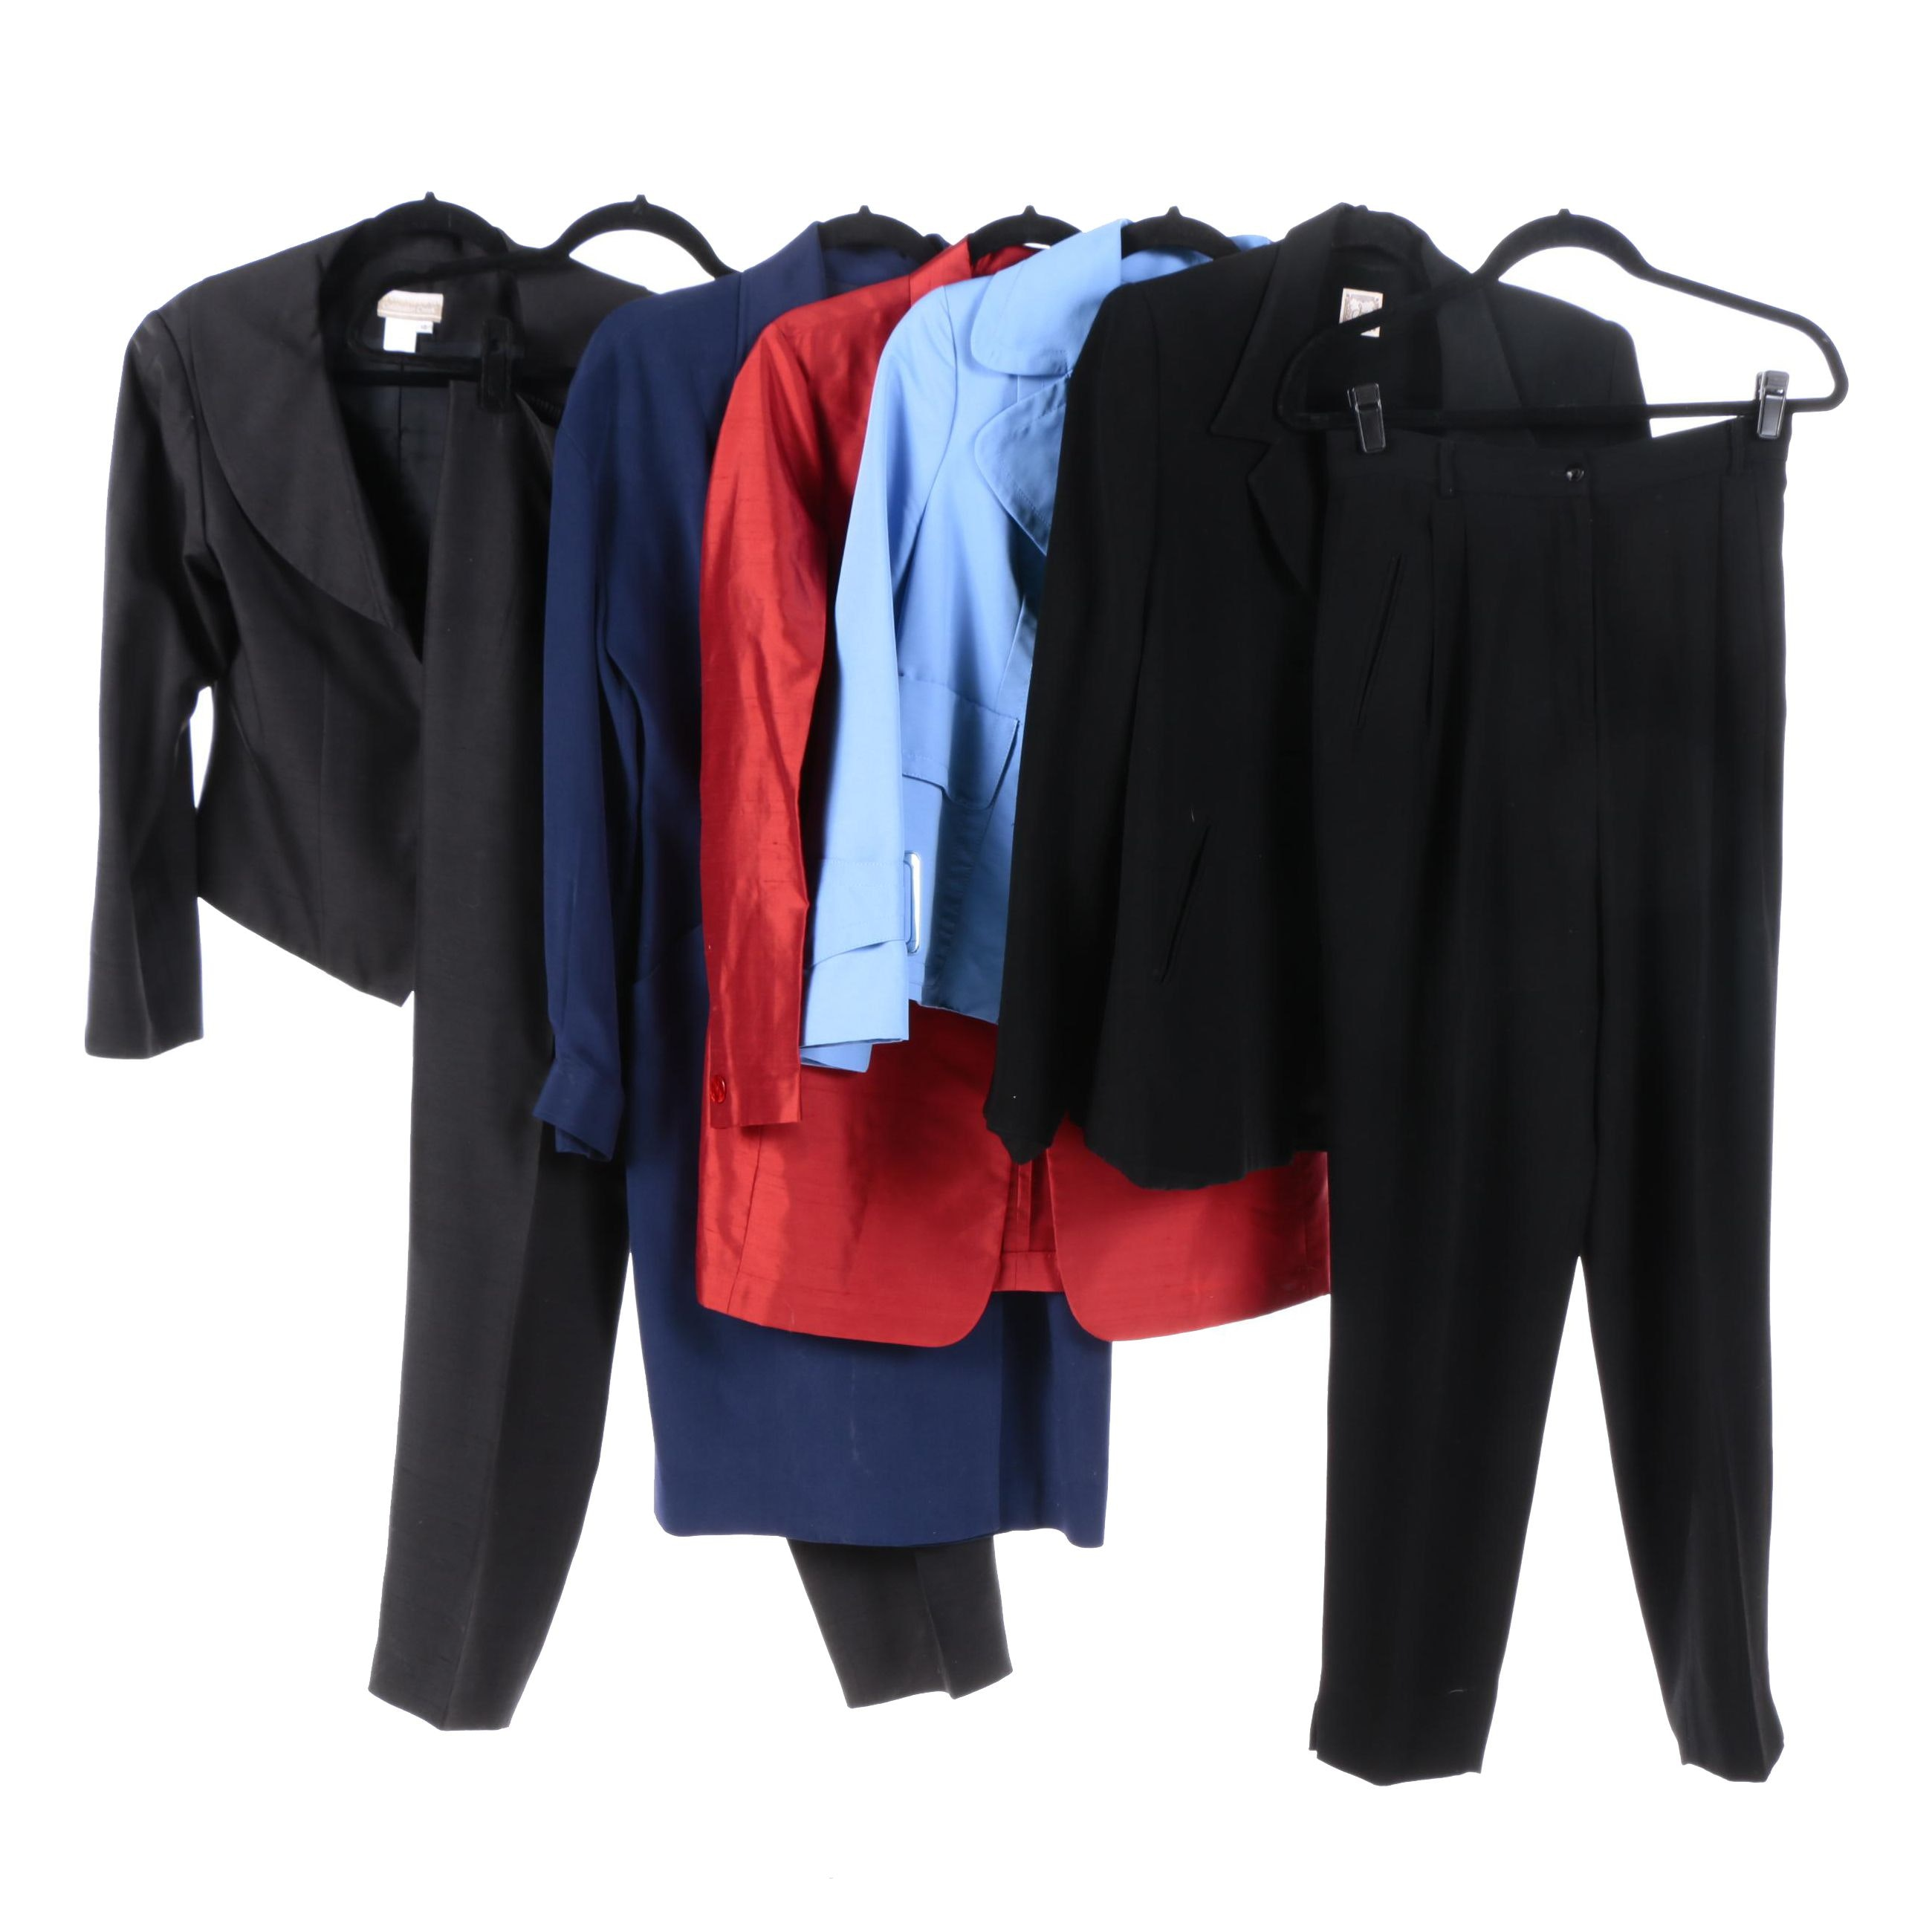 Woman's Suits and Jackets Including Dana Buchman and Worthington